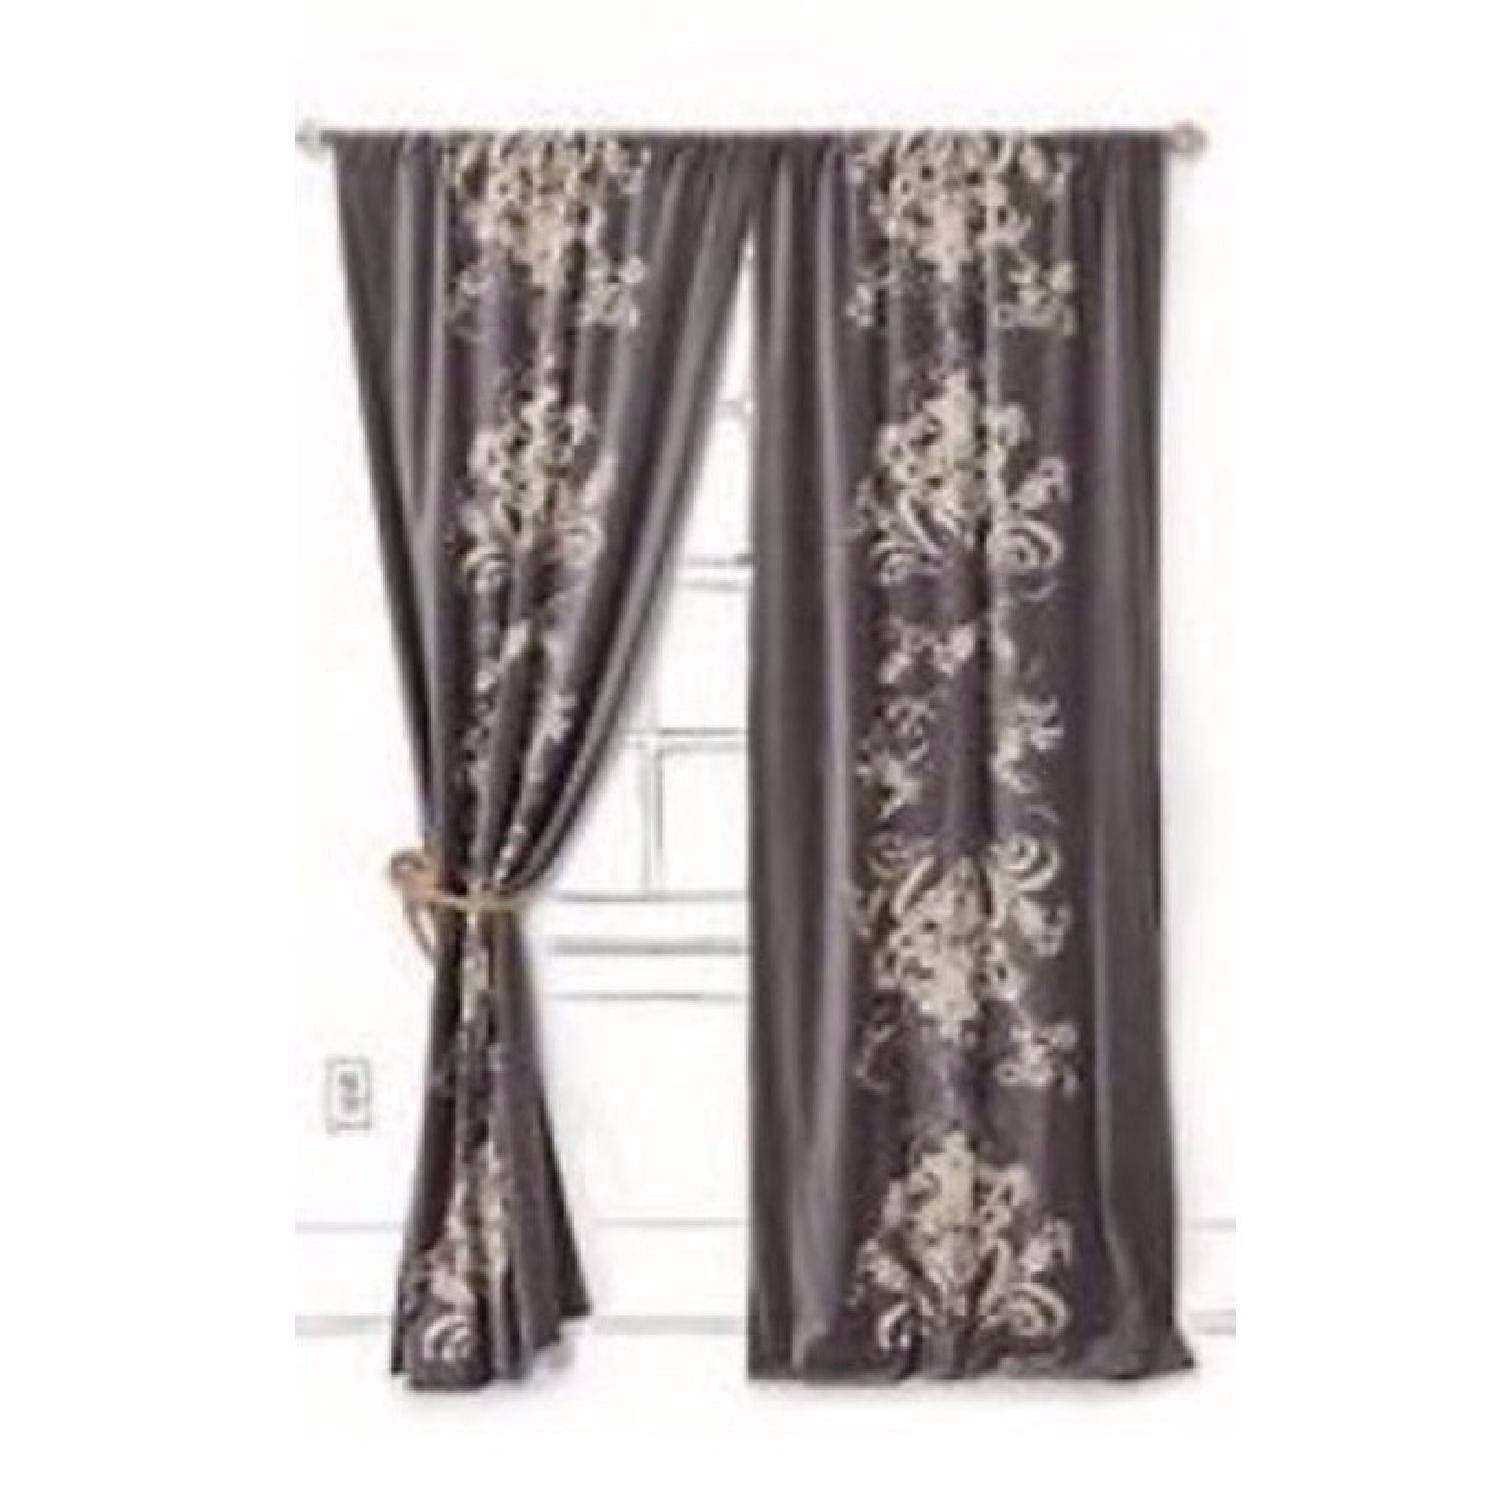 Anthropologie Viceroy Velvet Curtains - image-1